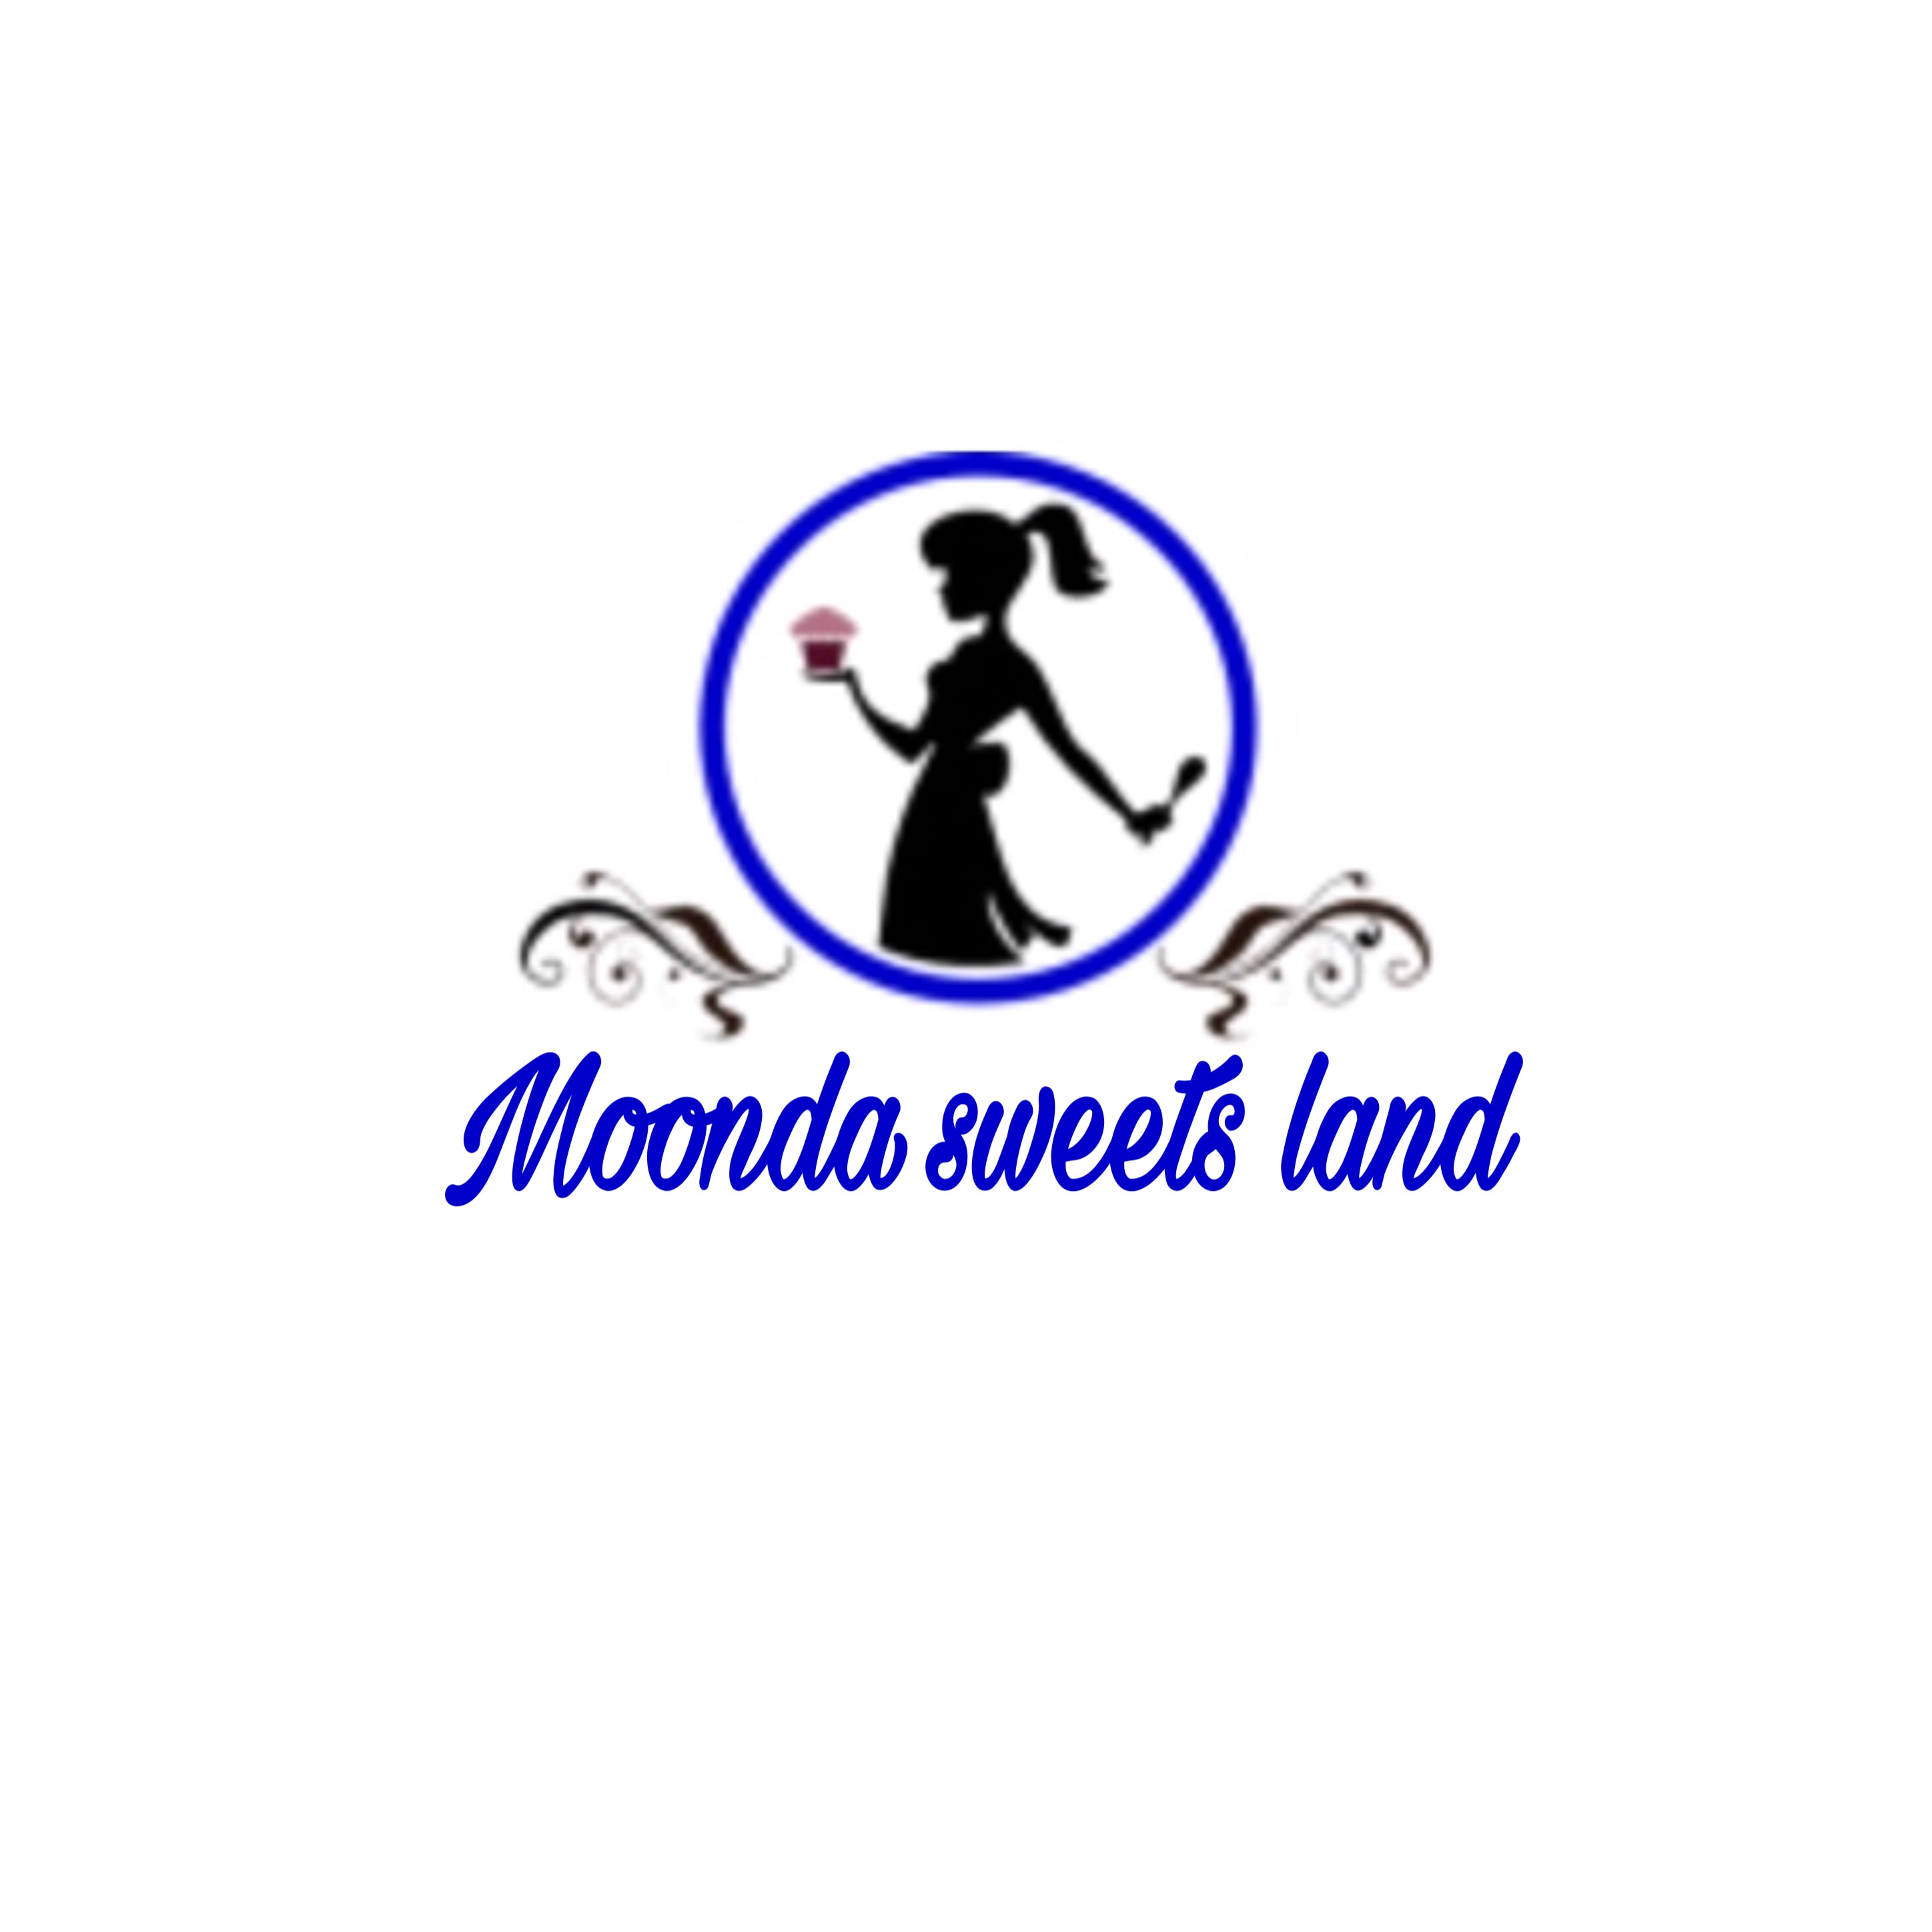 Sweet land_moonda